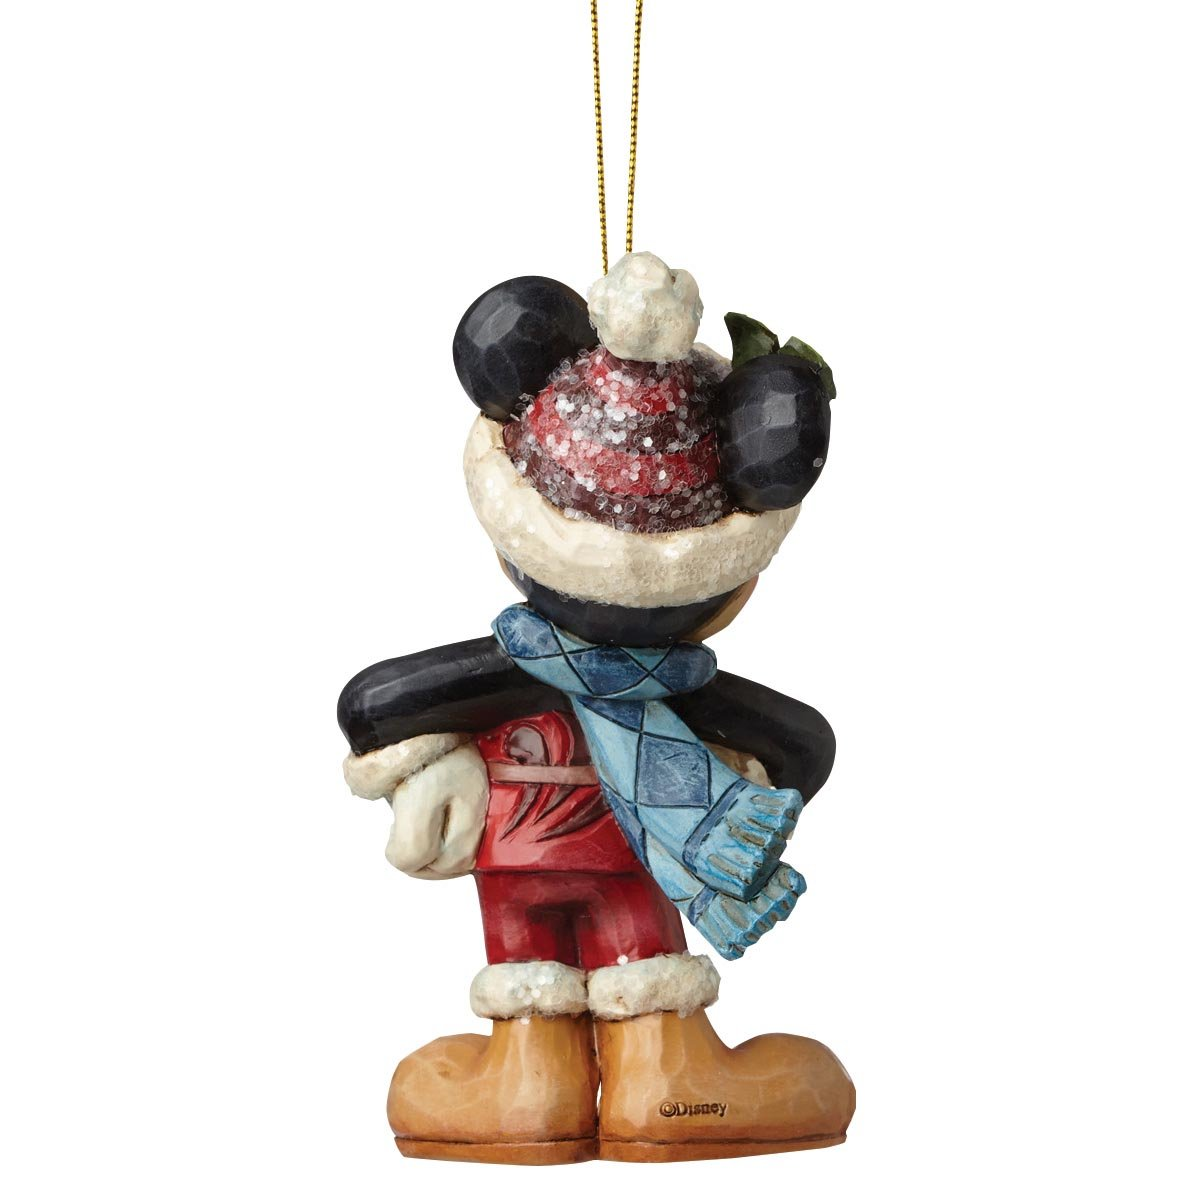 Disney Traditions Mickey Mouse Hanging Ornament Figure Enesco A28239